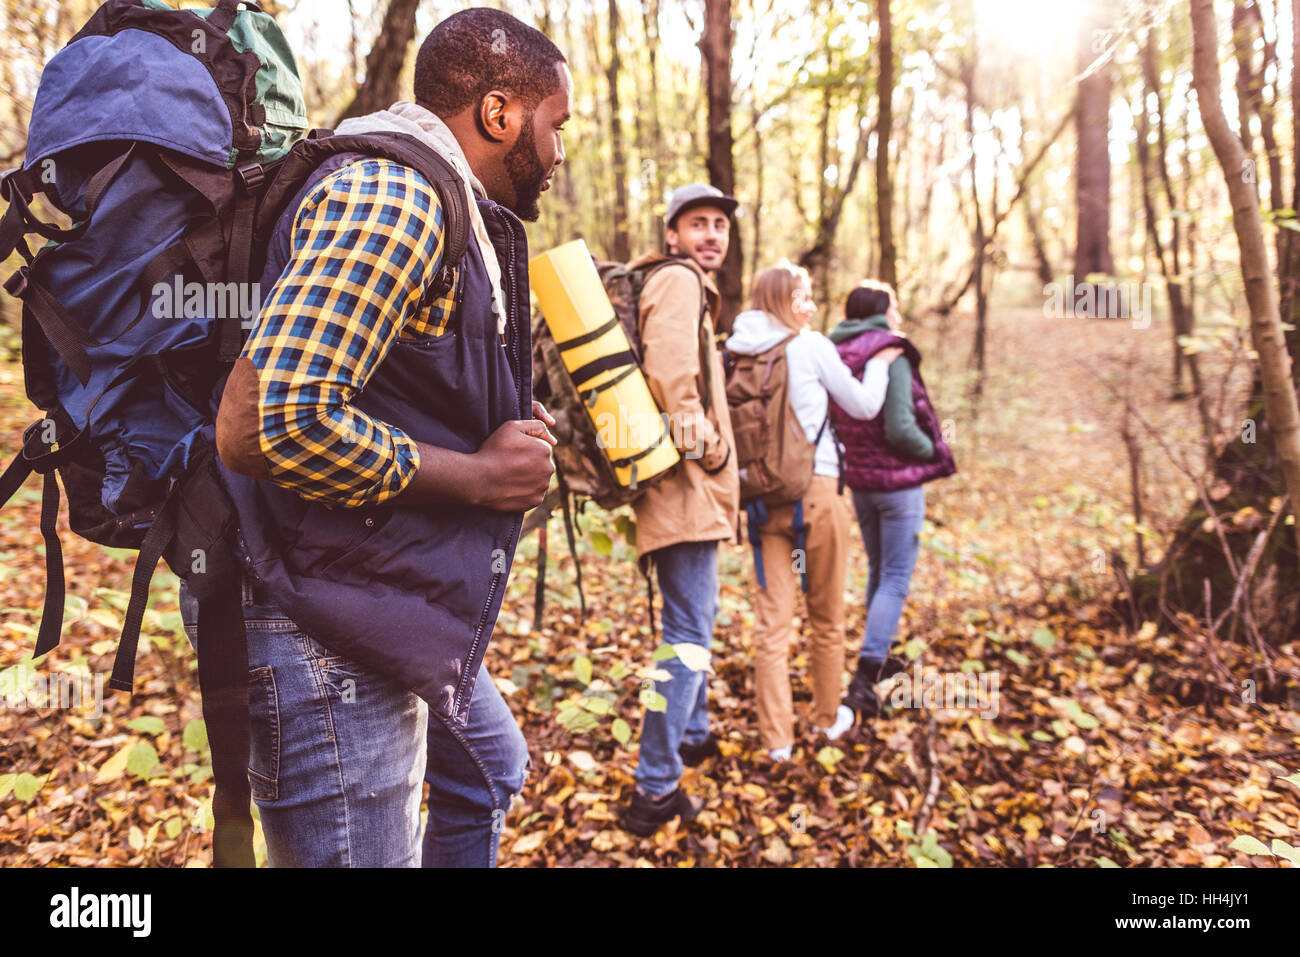 Four young backpackers walking in row in autumn forest at sunset - Stock Image